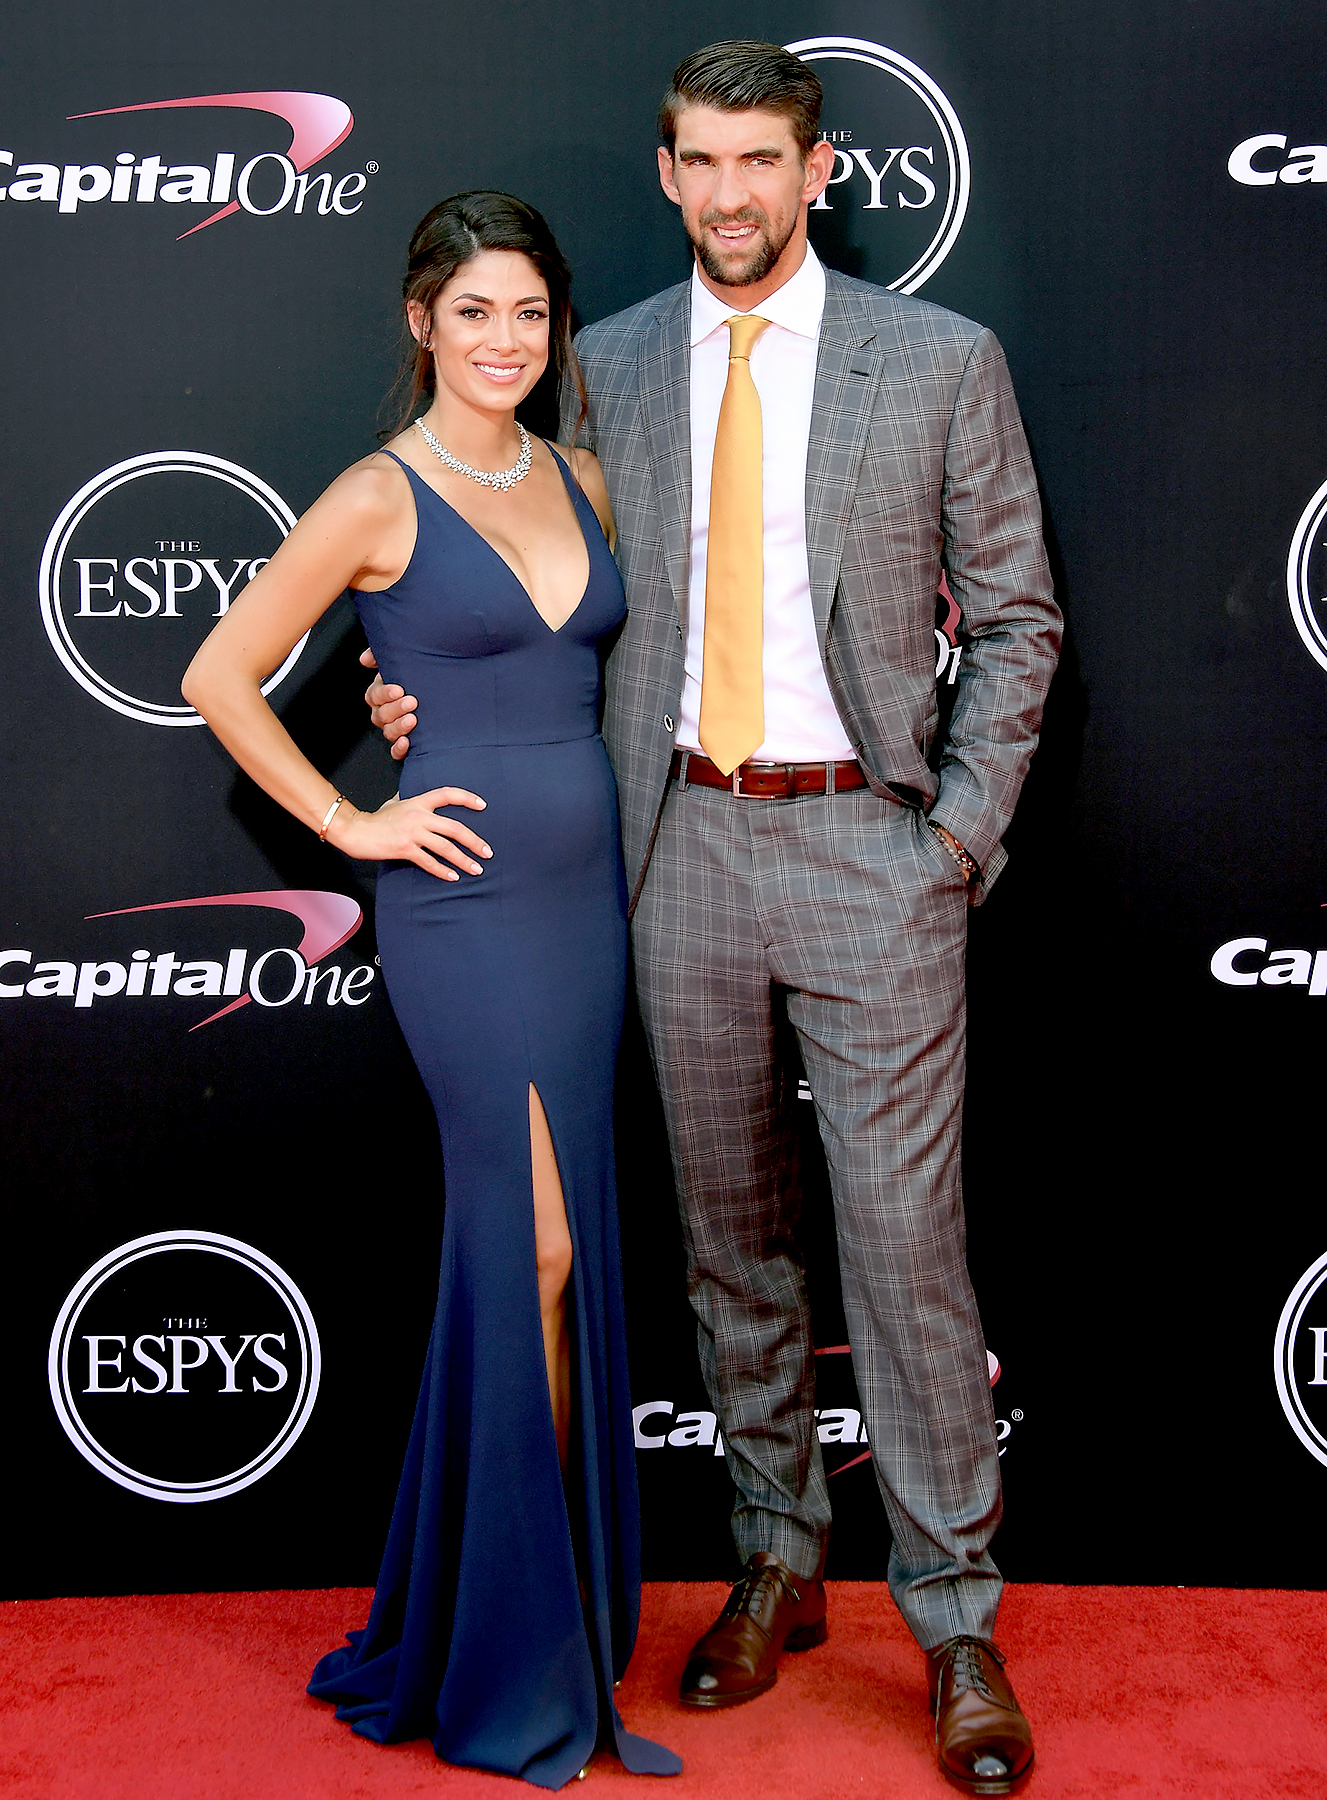 Michael Phelps (R) and Nicole Johnson attend The 2017 ESPYS at Microsoft Theater on July 12, 2017 in Los Angeles, California.